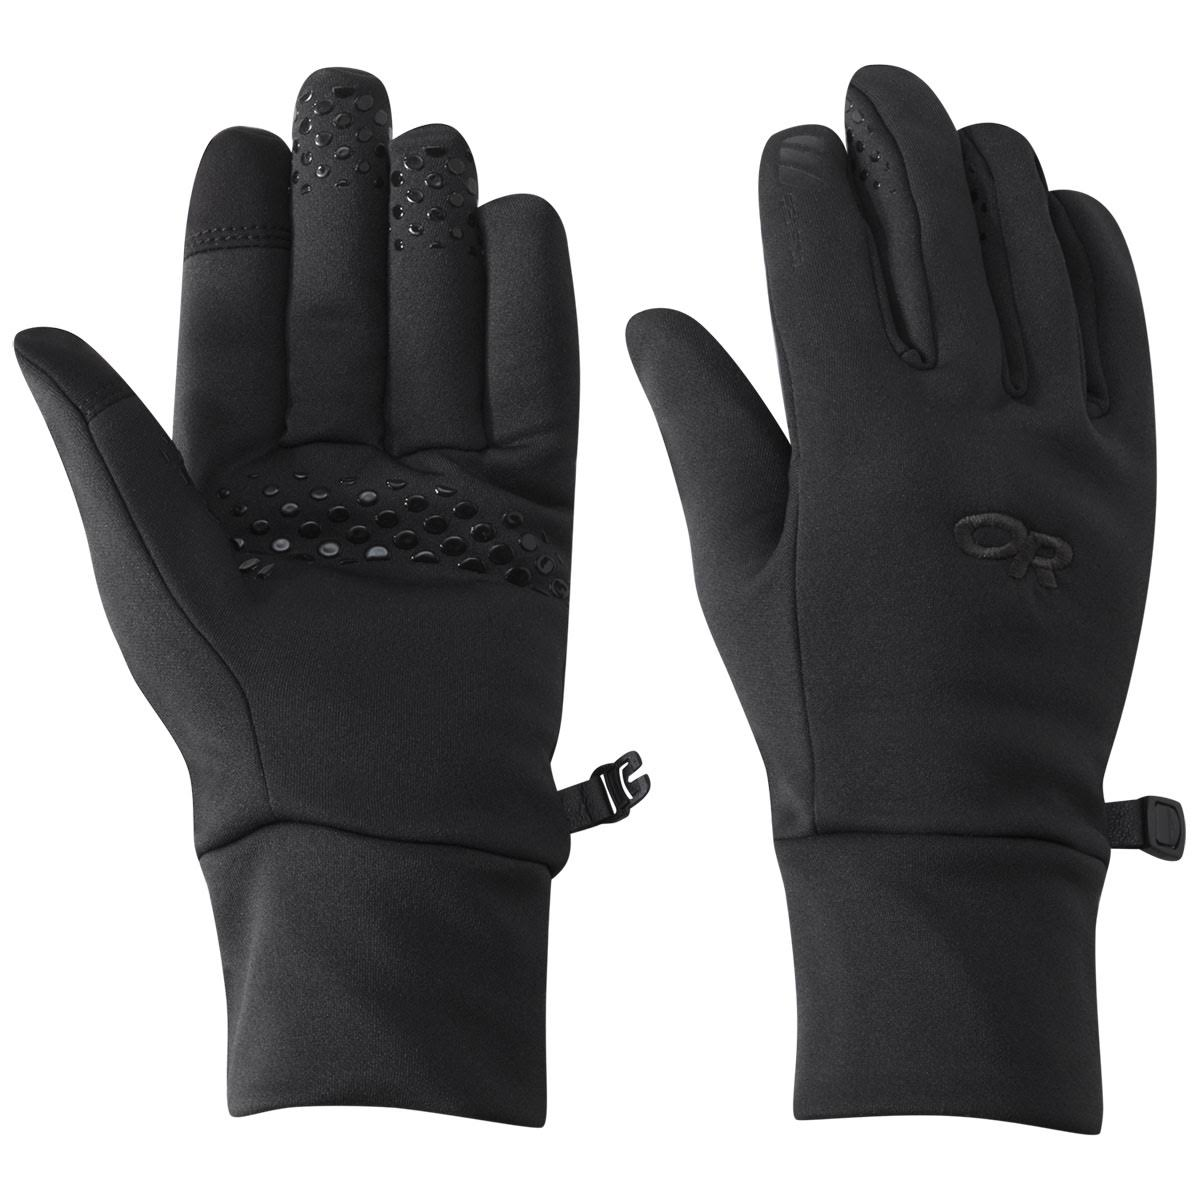 Outdoor Research Vigor Heavyweight Sensor Extreme Cold Weather Gloves - Black